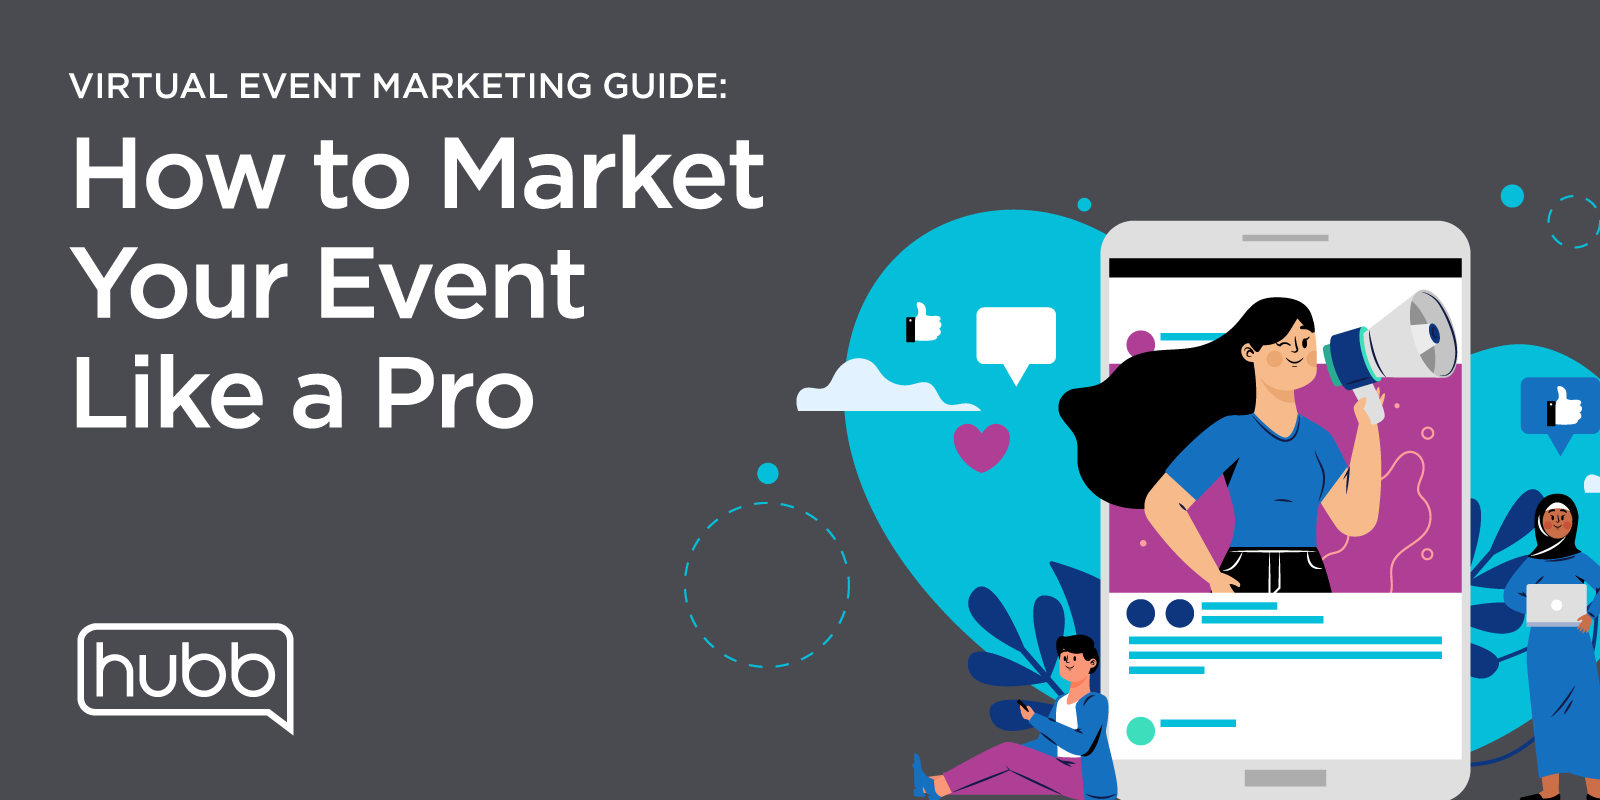 Guide to Virtual Event Marketing: How to market your virtual event like a pro